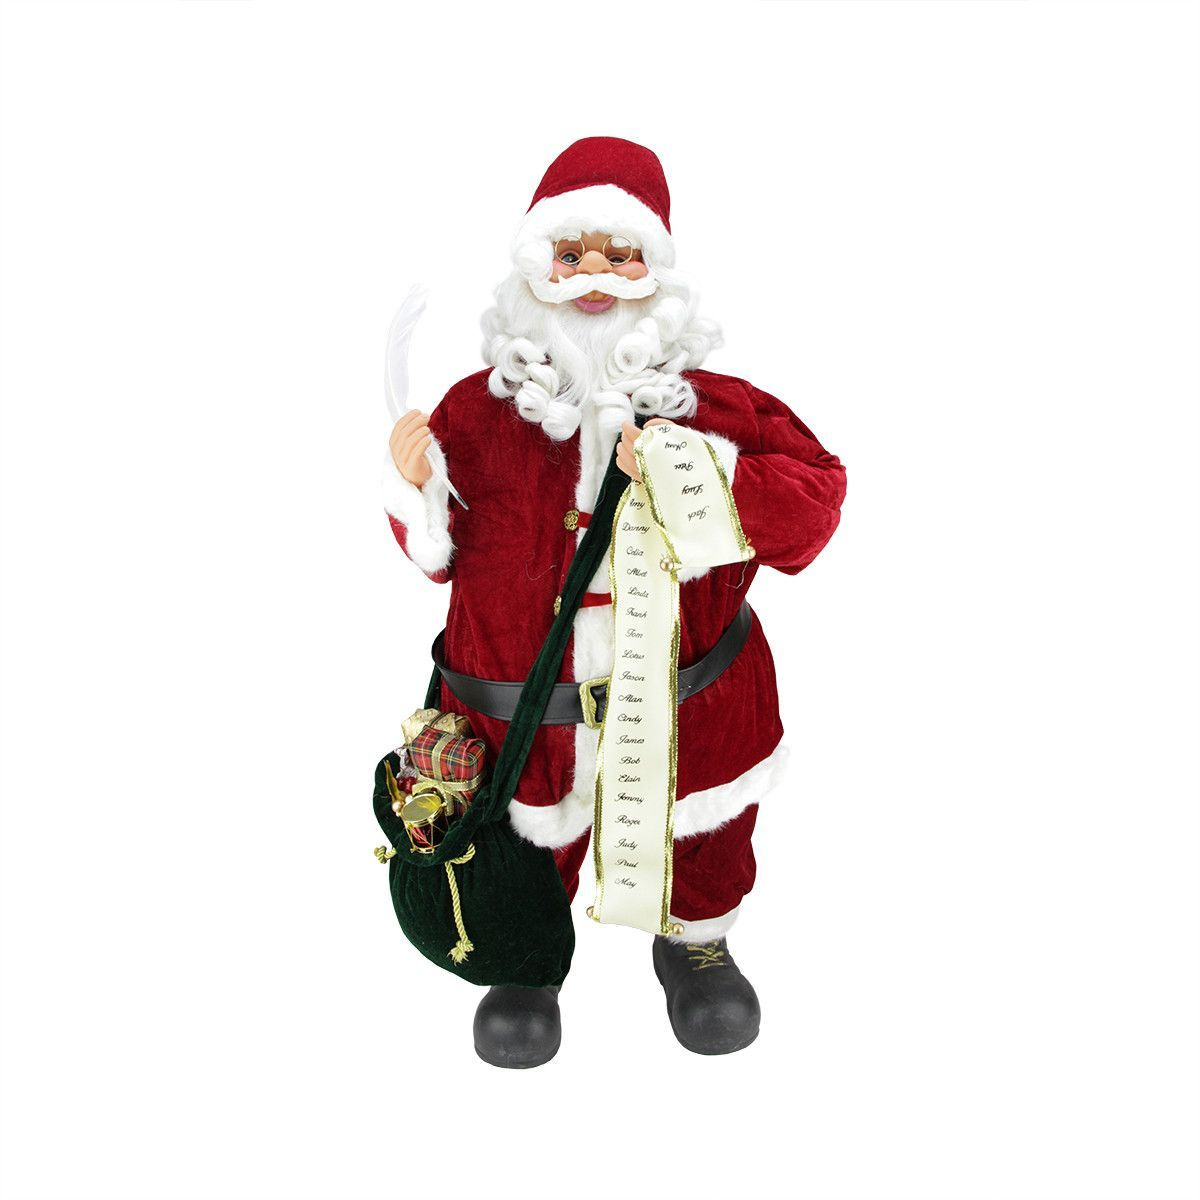 Musical Standing Santa Claus Christmas Figure with Nice List